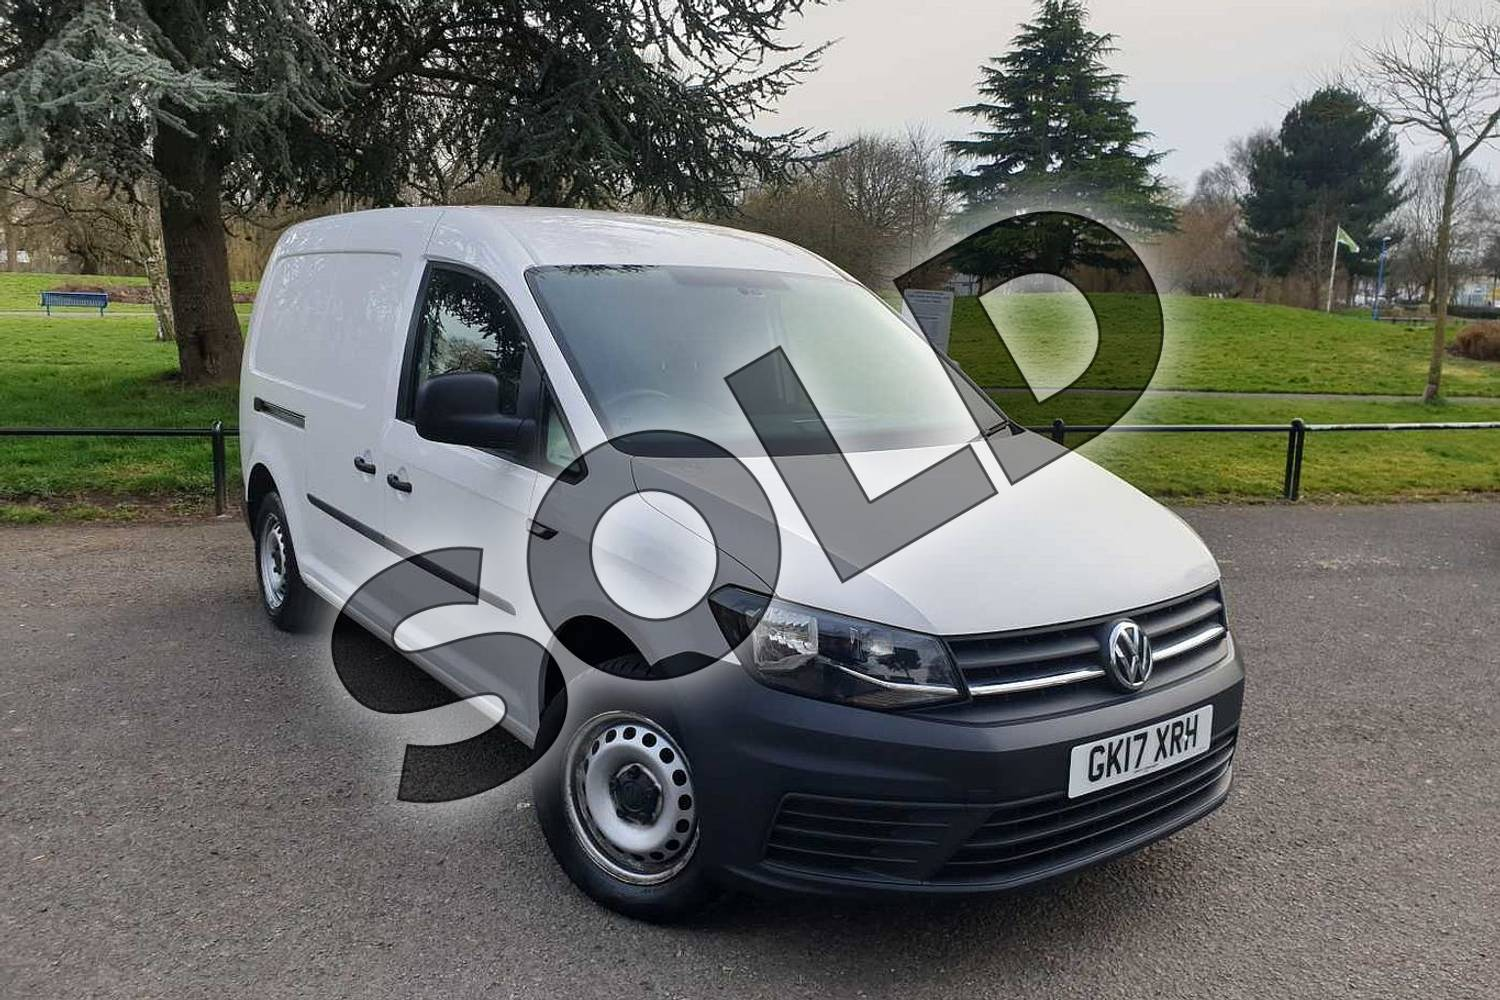 2017 Volkswagen Caddy Maxi C20 Diesel 2.0 TDI BlueMotion Tech 102PS Startline Van in White at Listers Volkswagen Van Centre Coventry